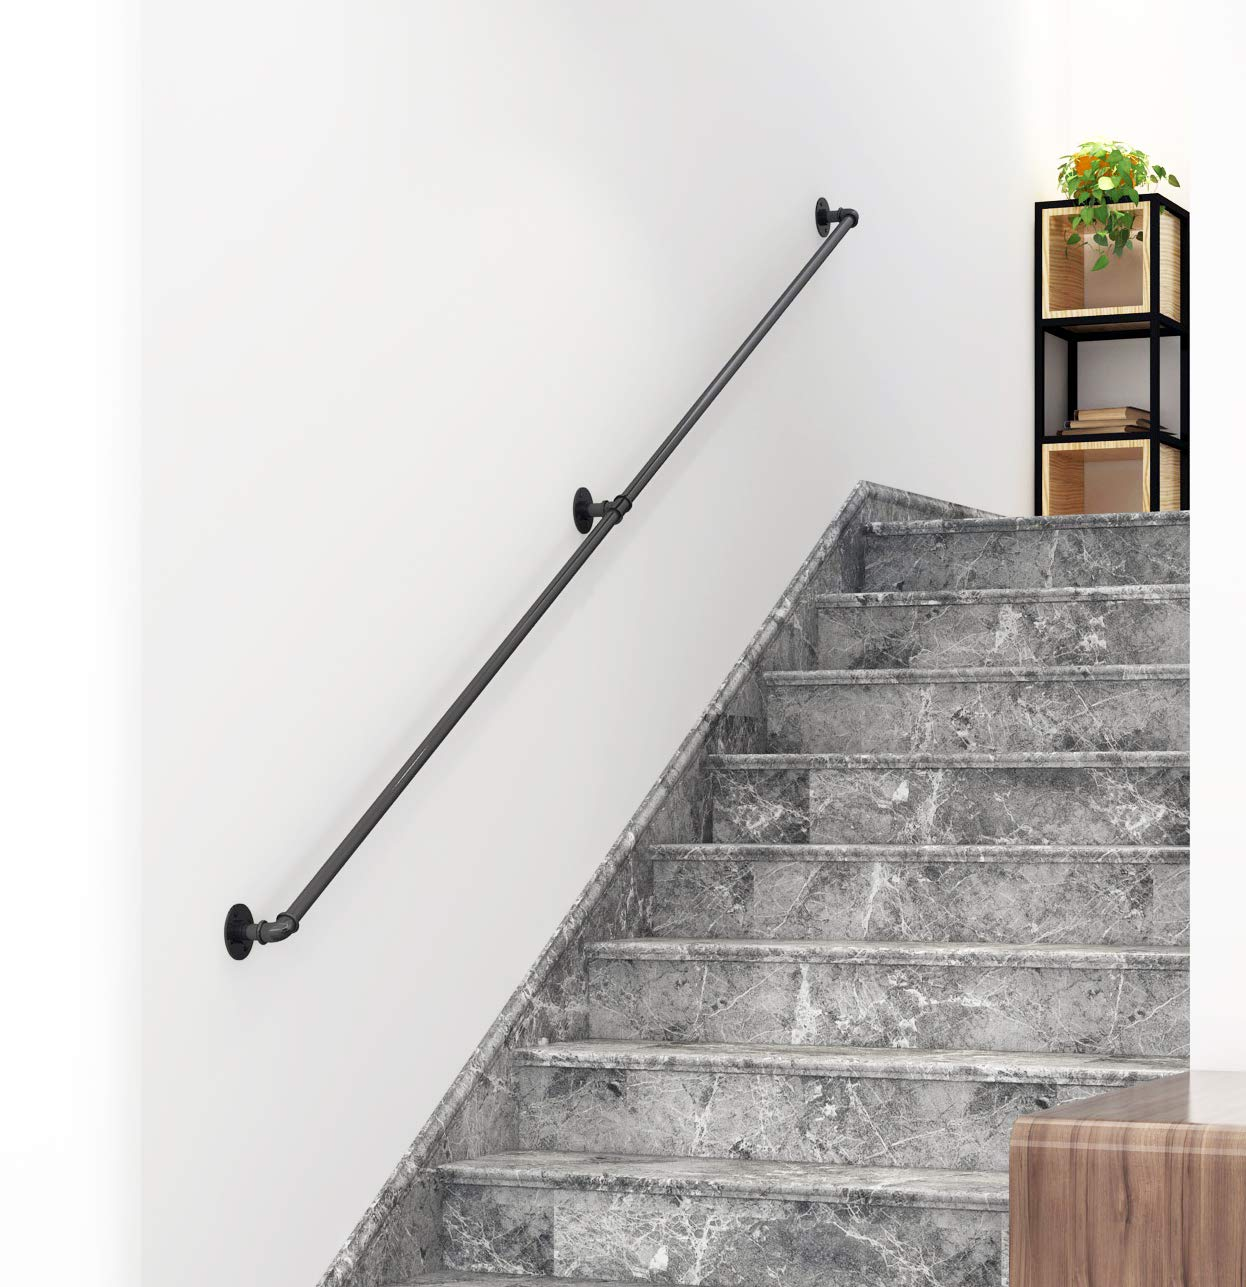 DIYHD 11FT Stair Black Pipe Handrail with 3 Wall Mount Supports,Rustic Black,Round Corner Style by DIYHD